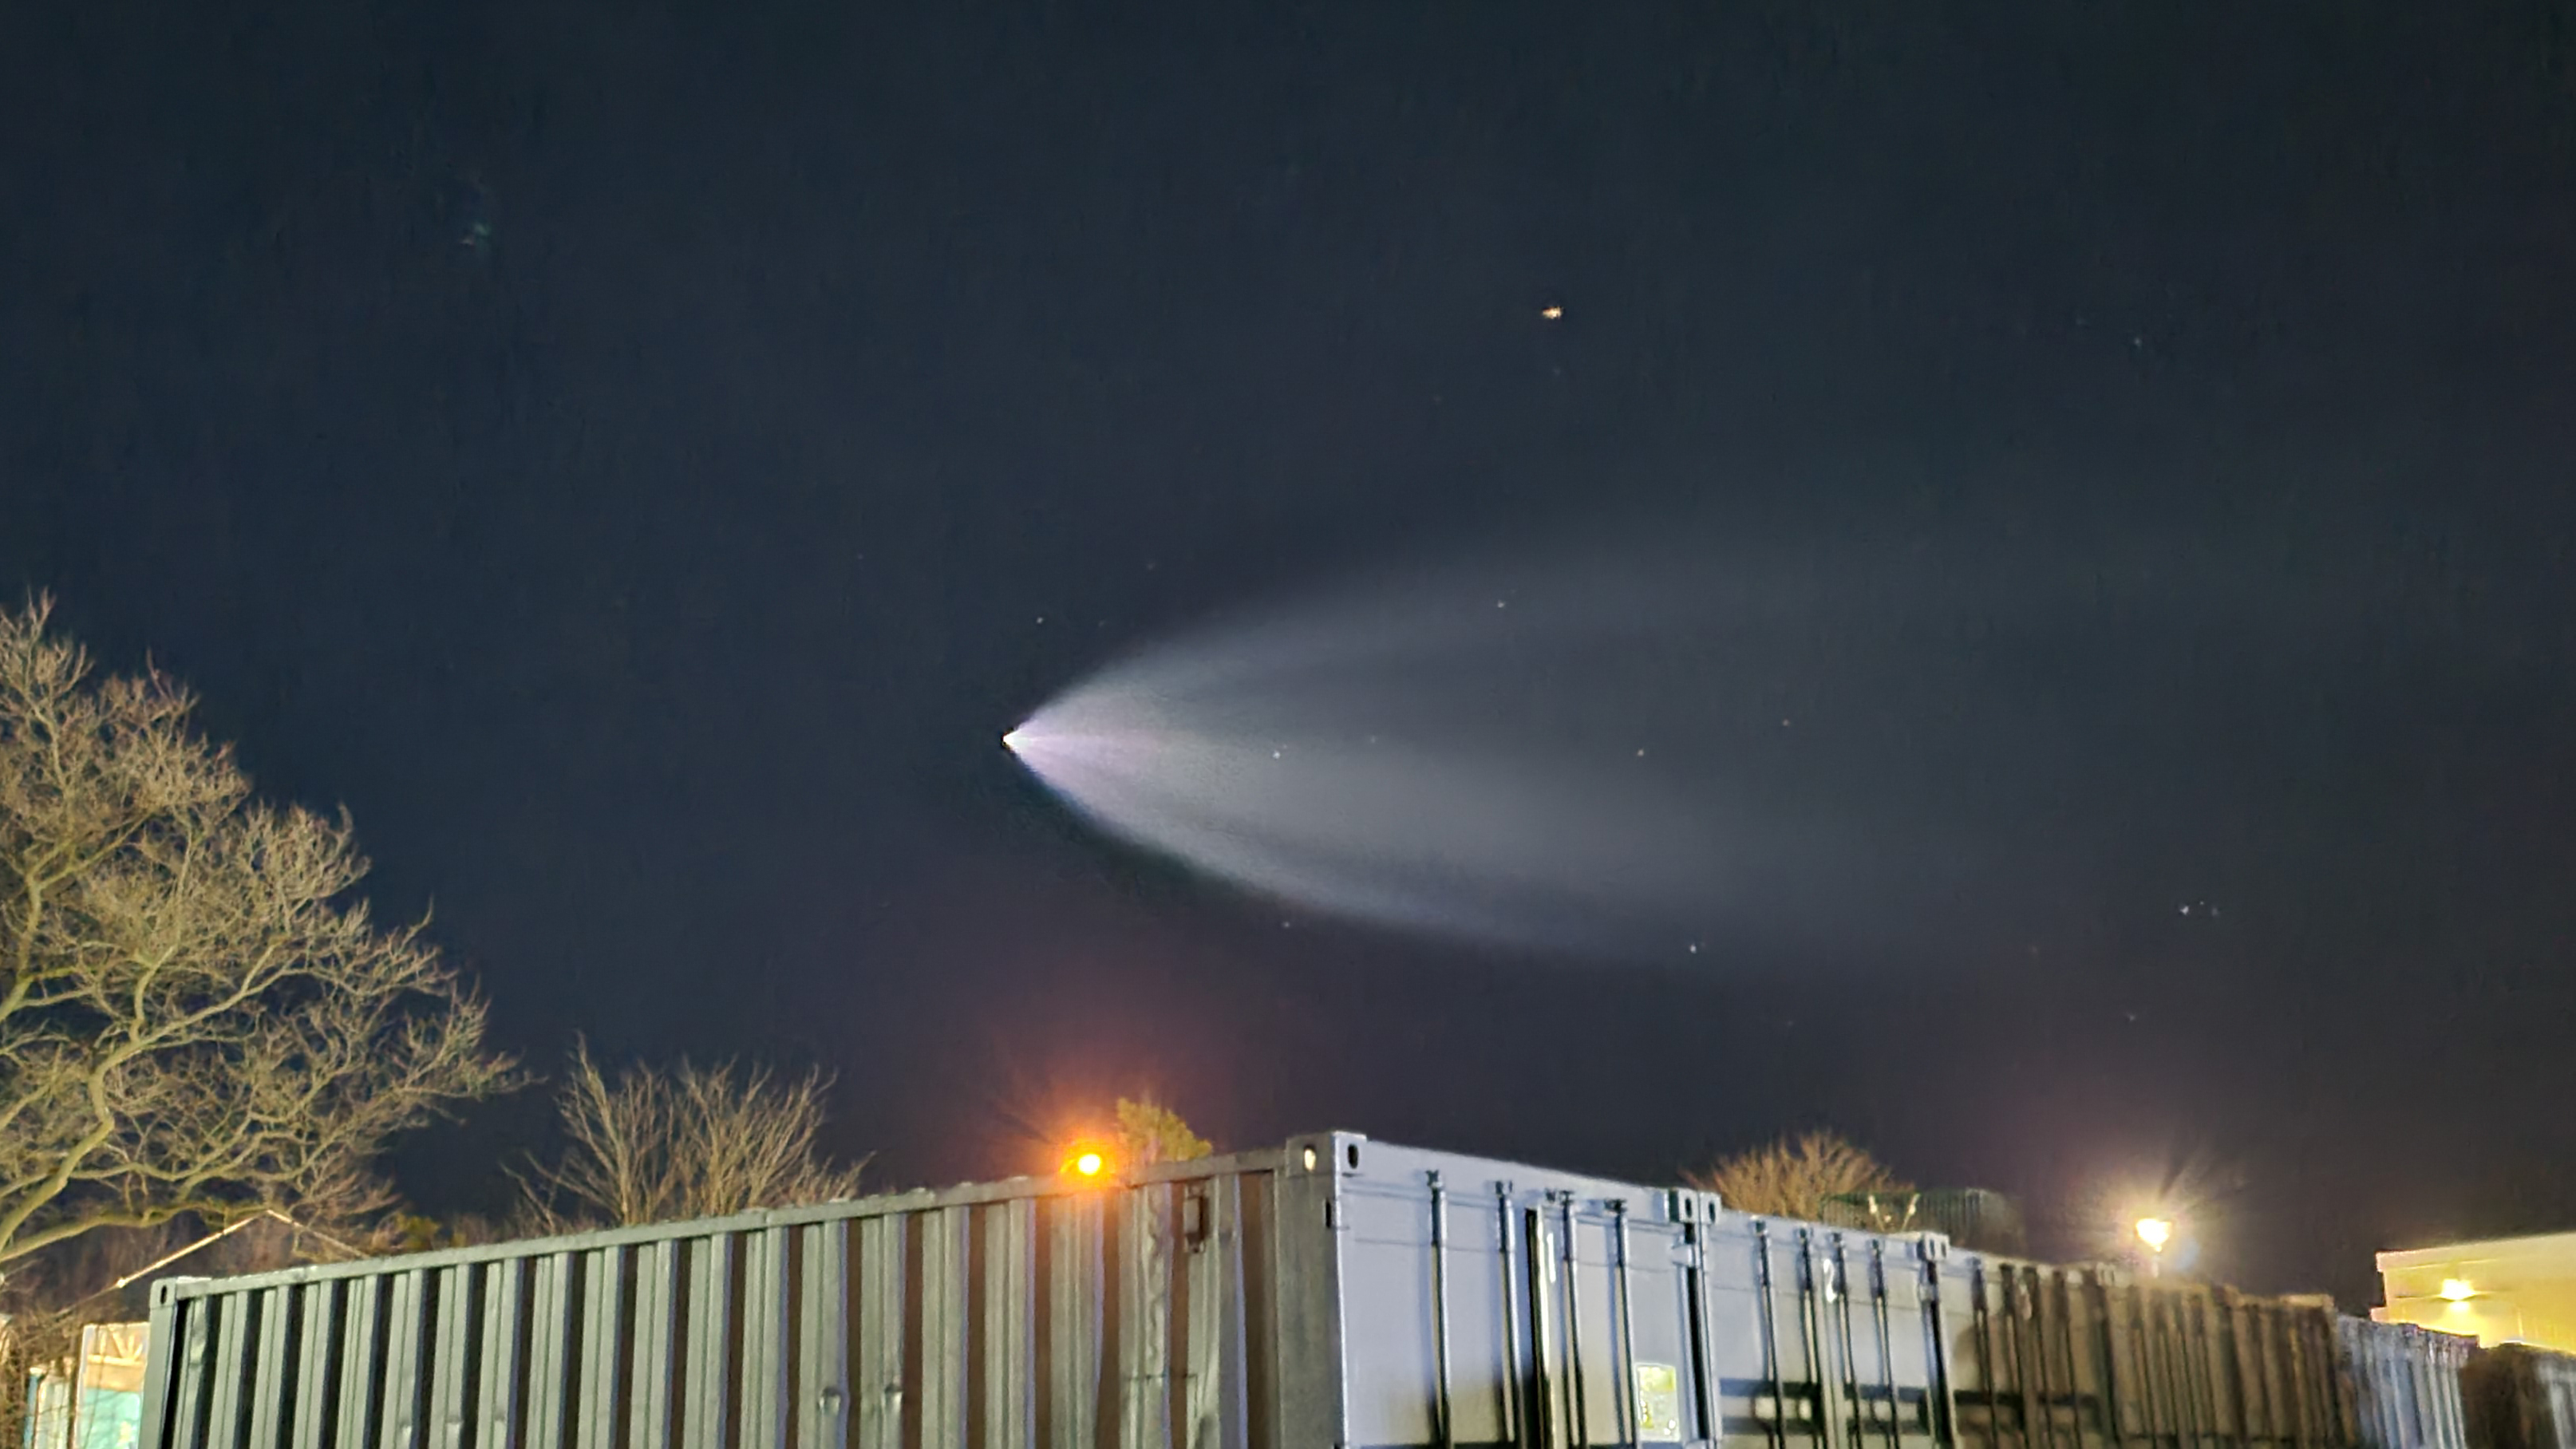 A photo captured by Christopher Quiles shows the SpaceX launch March 14, 2021 from Coney Island.